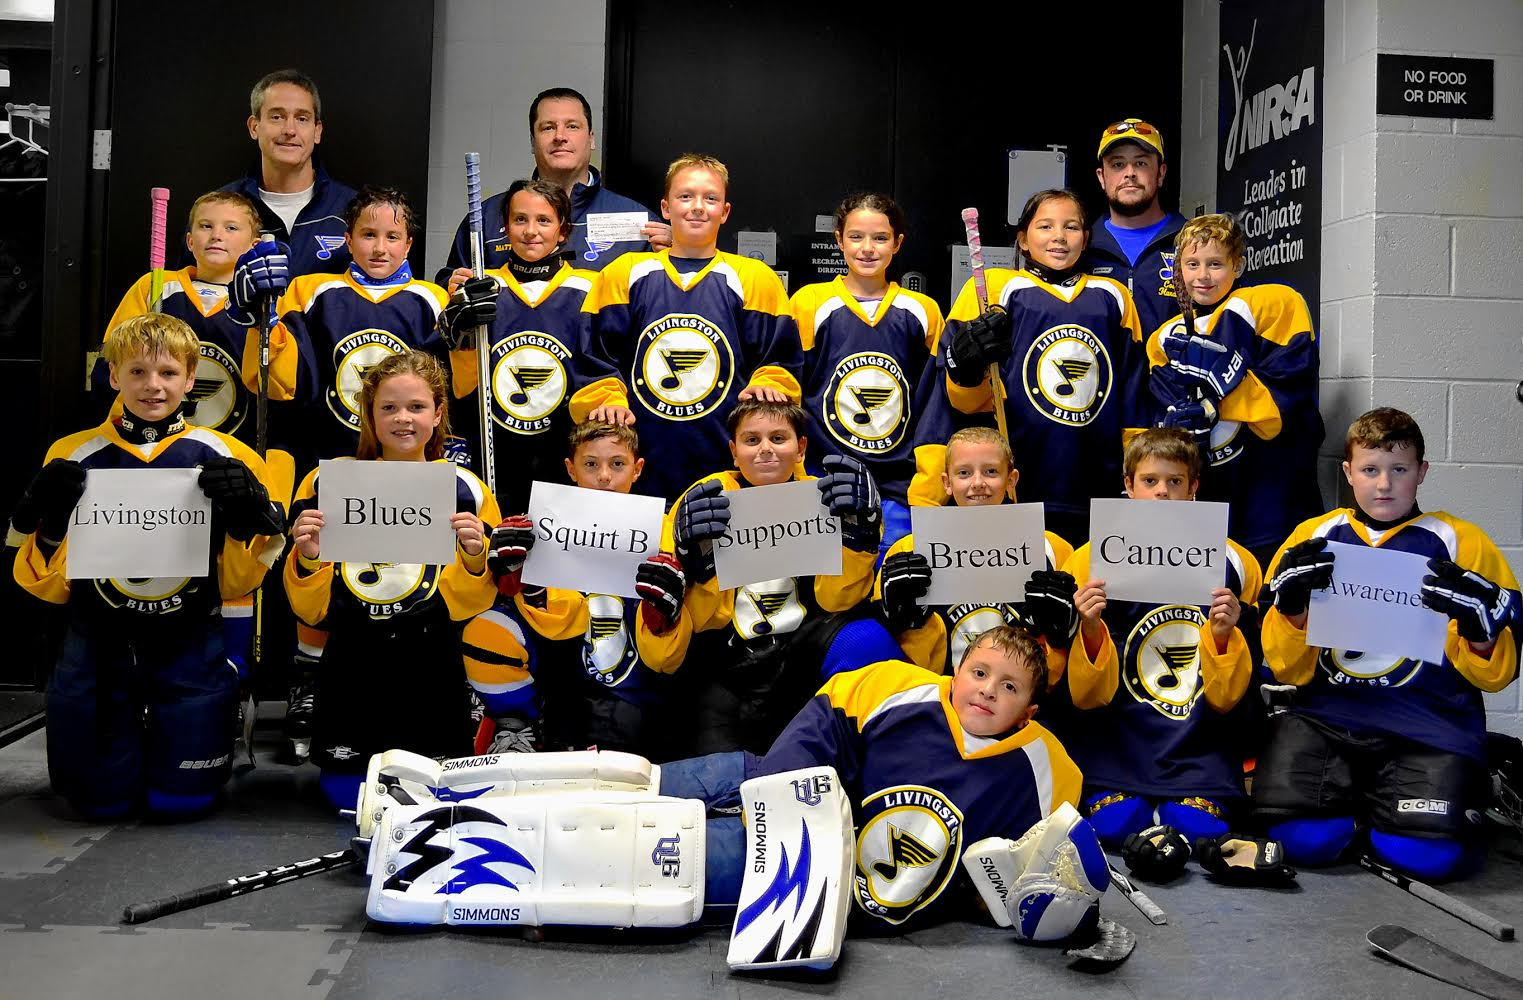 Blues Squirt B Youth Hockey Team Checks Breast Cancer